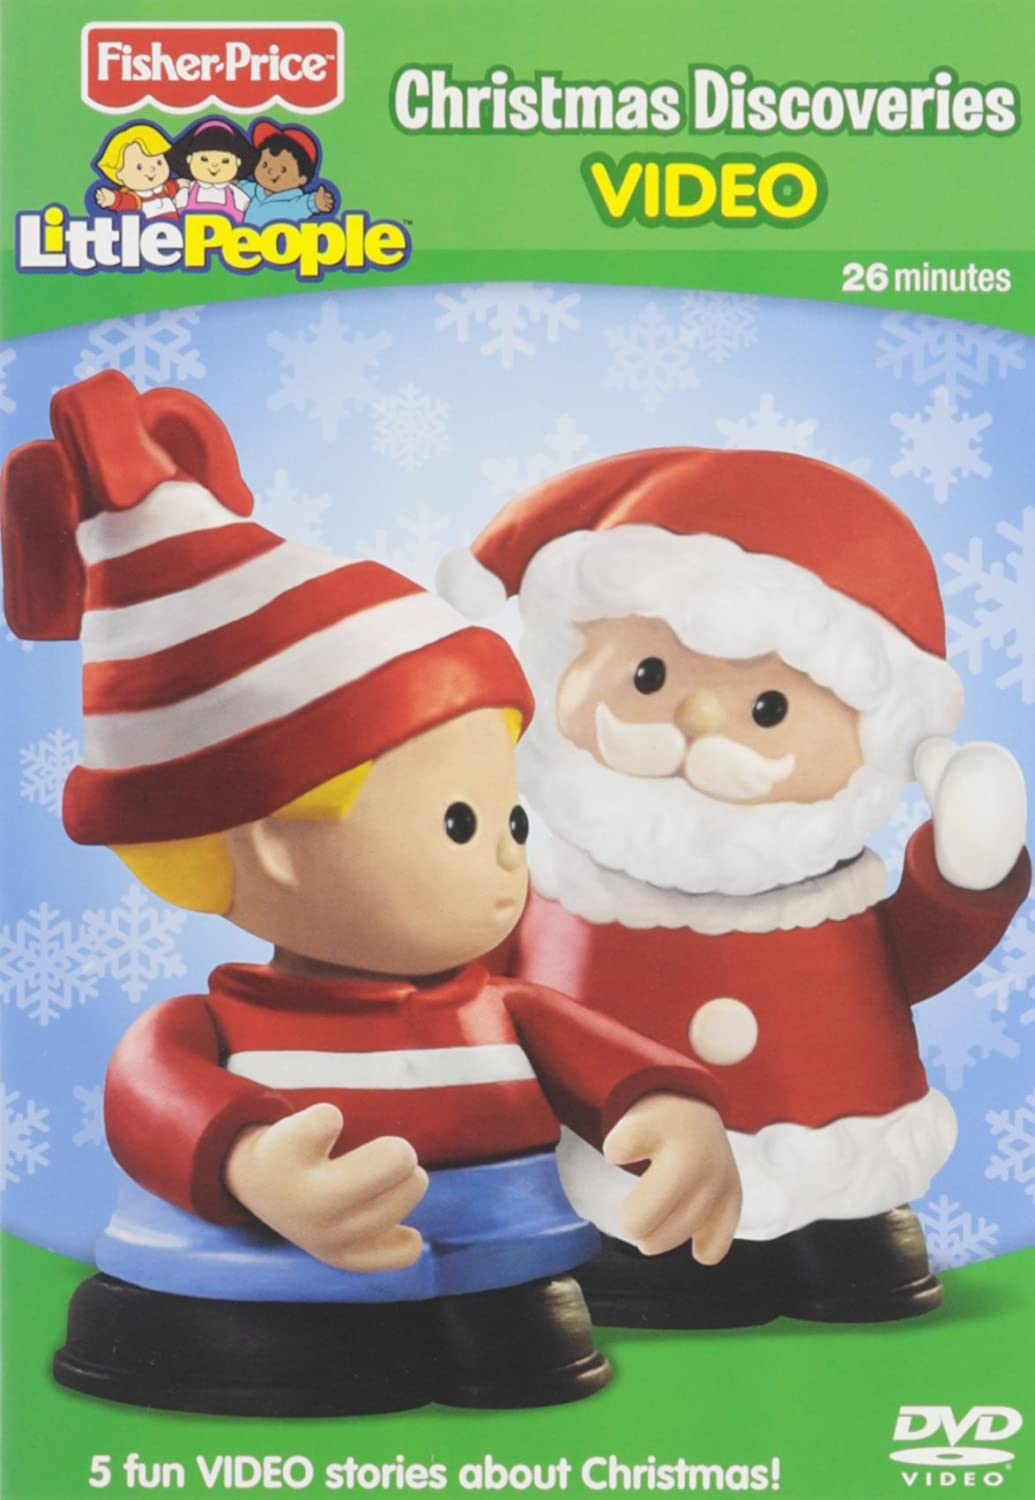 Amazon.com: Fisher-Price Little People: Christmas Discoveries ...